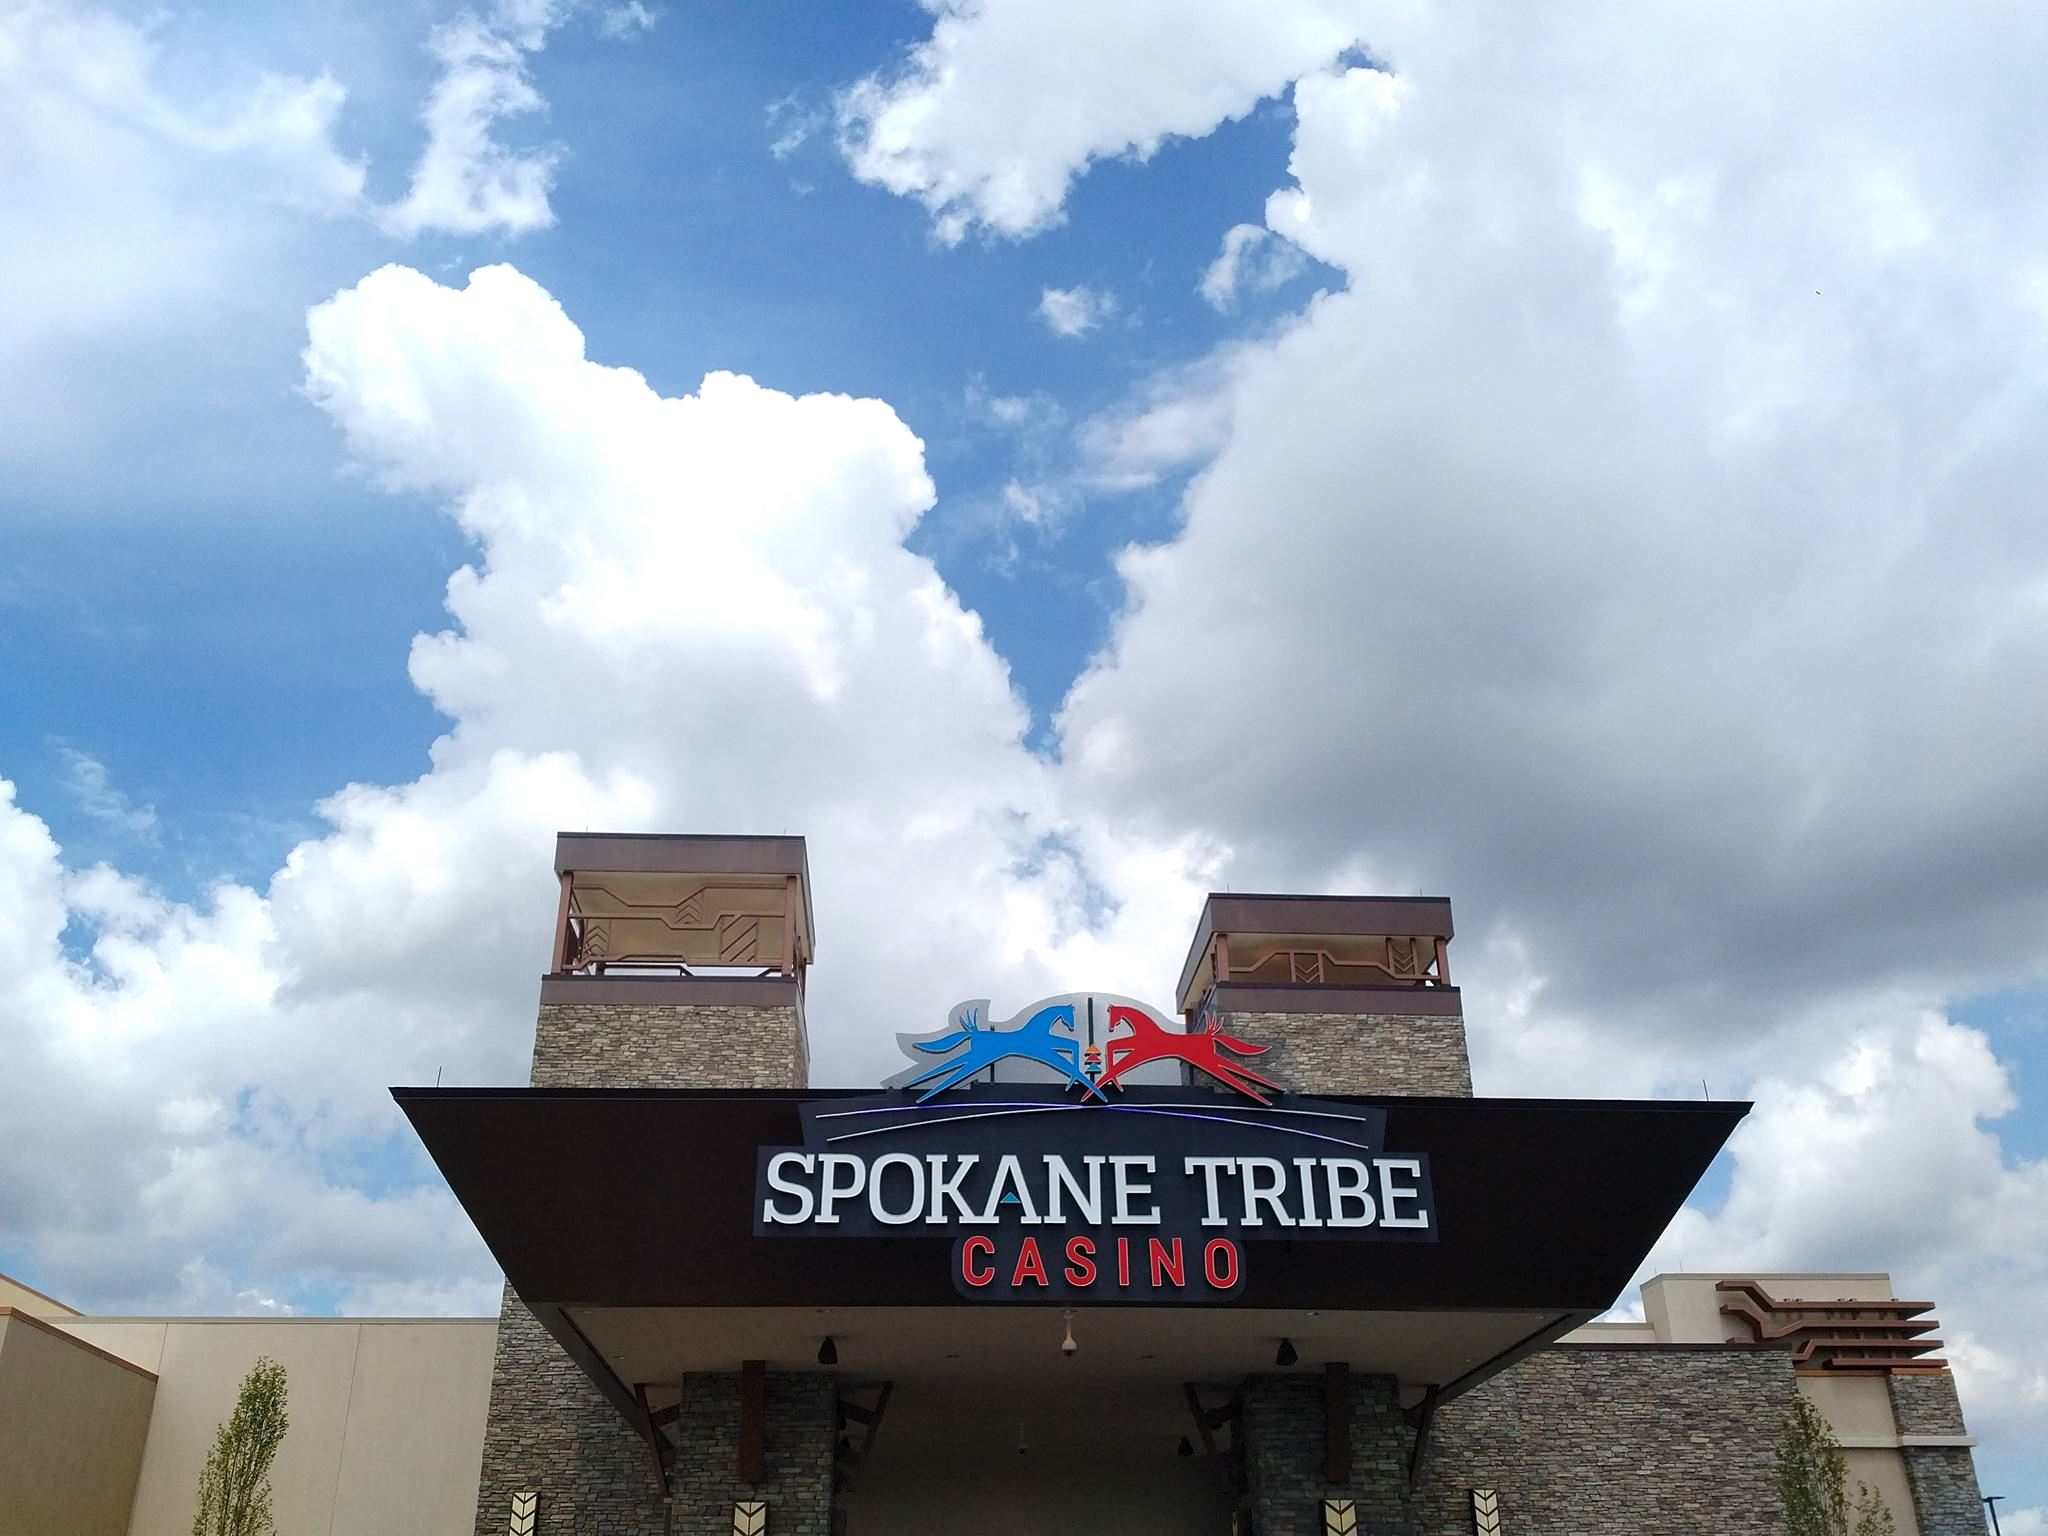 'We are thrilled': Spokane Tribe prevails in challenge to new casino